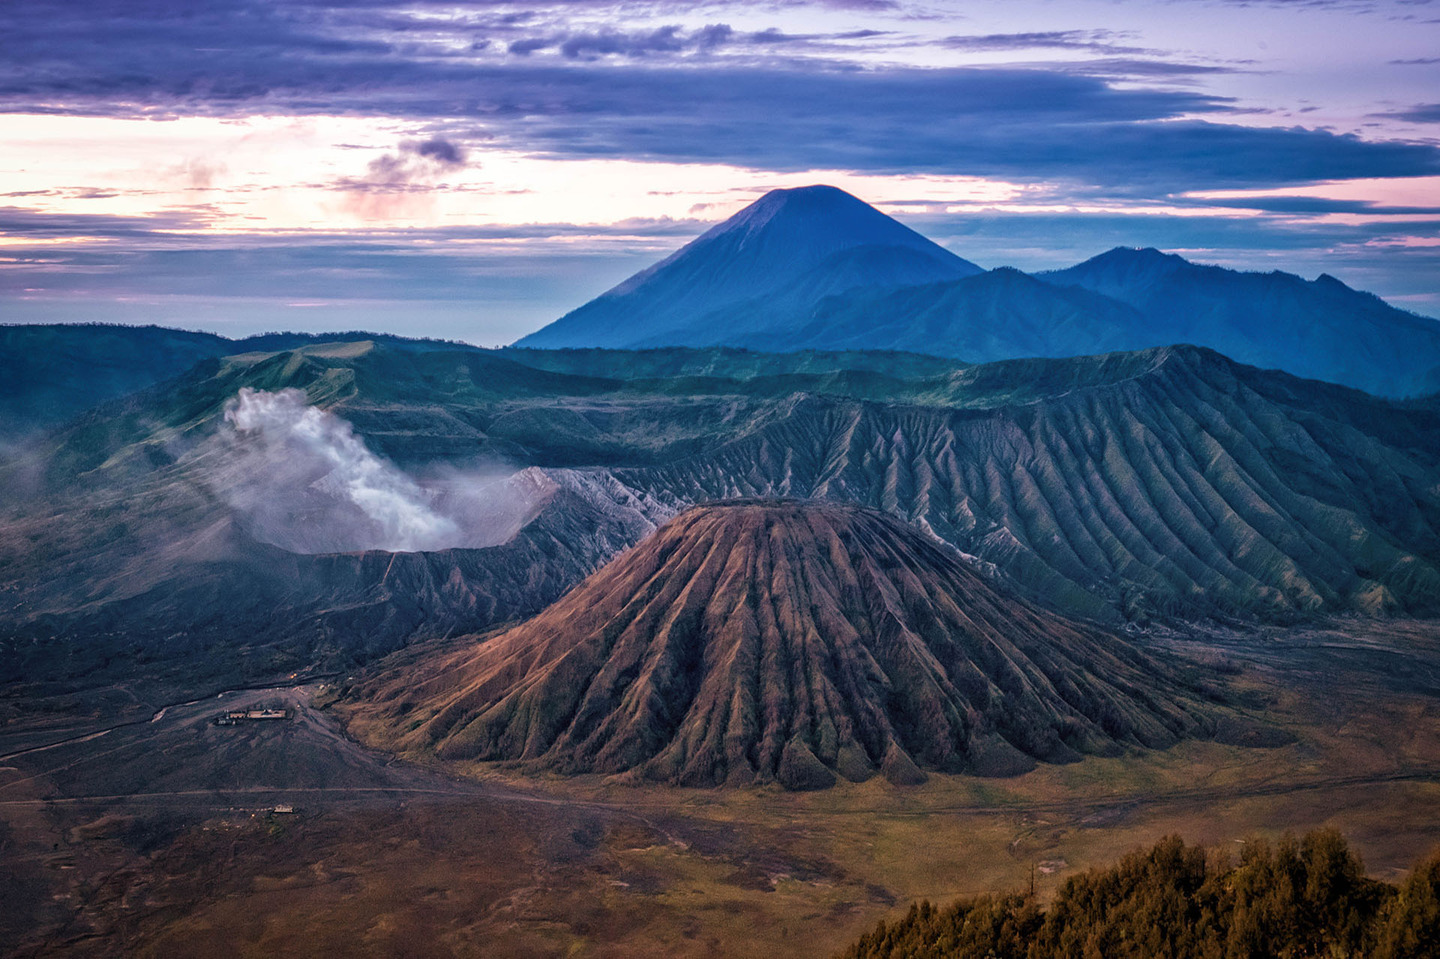 Indonesia Mt Bromo sunrise by Rosie Yound